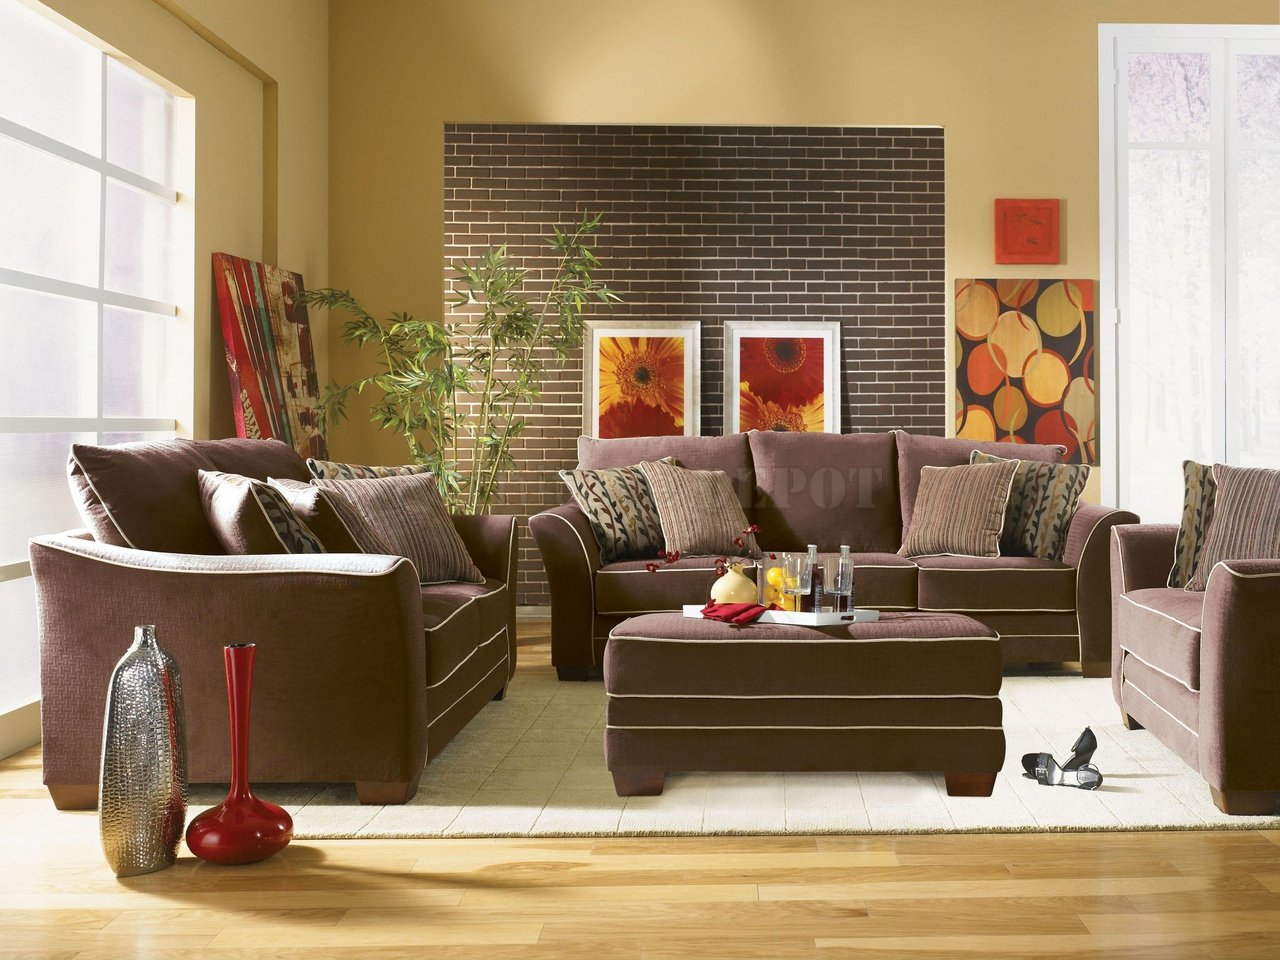 Just living room living room ideas brown sofa for Brown sofa living room design ideas